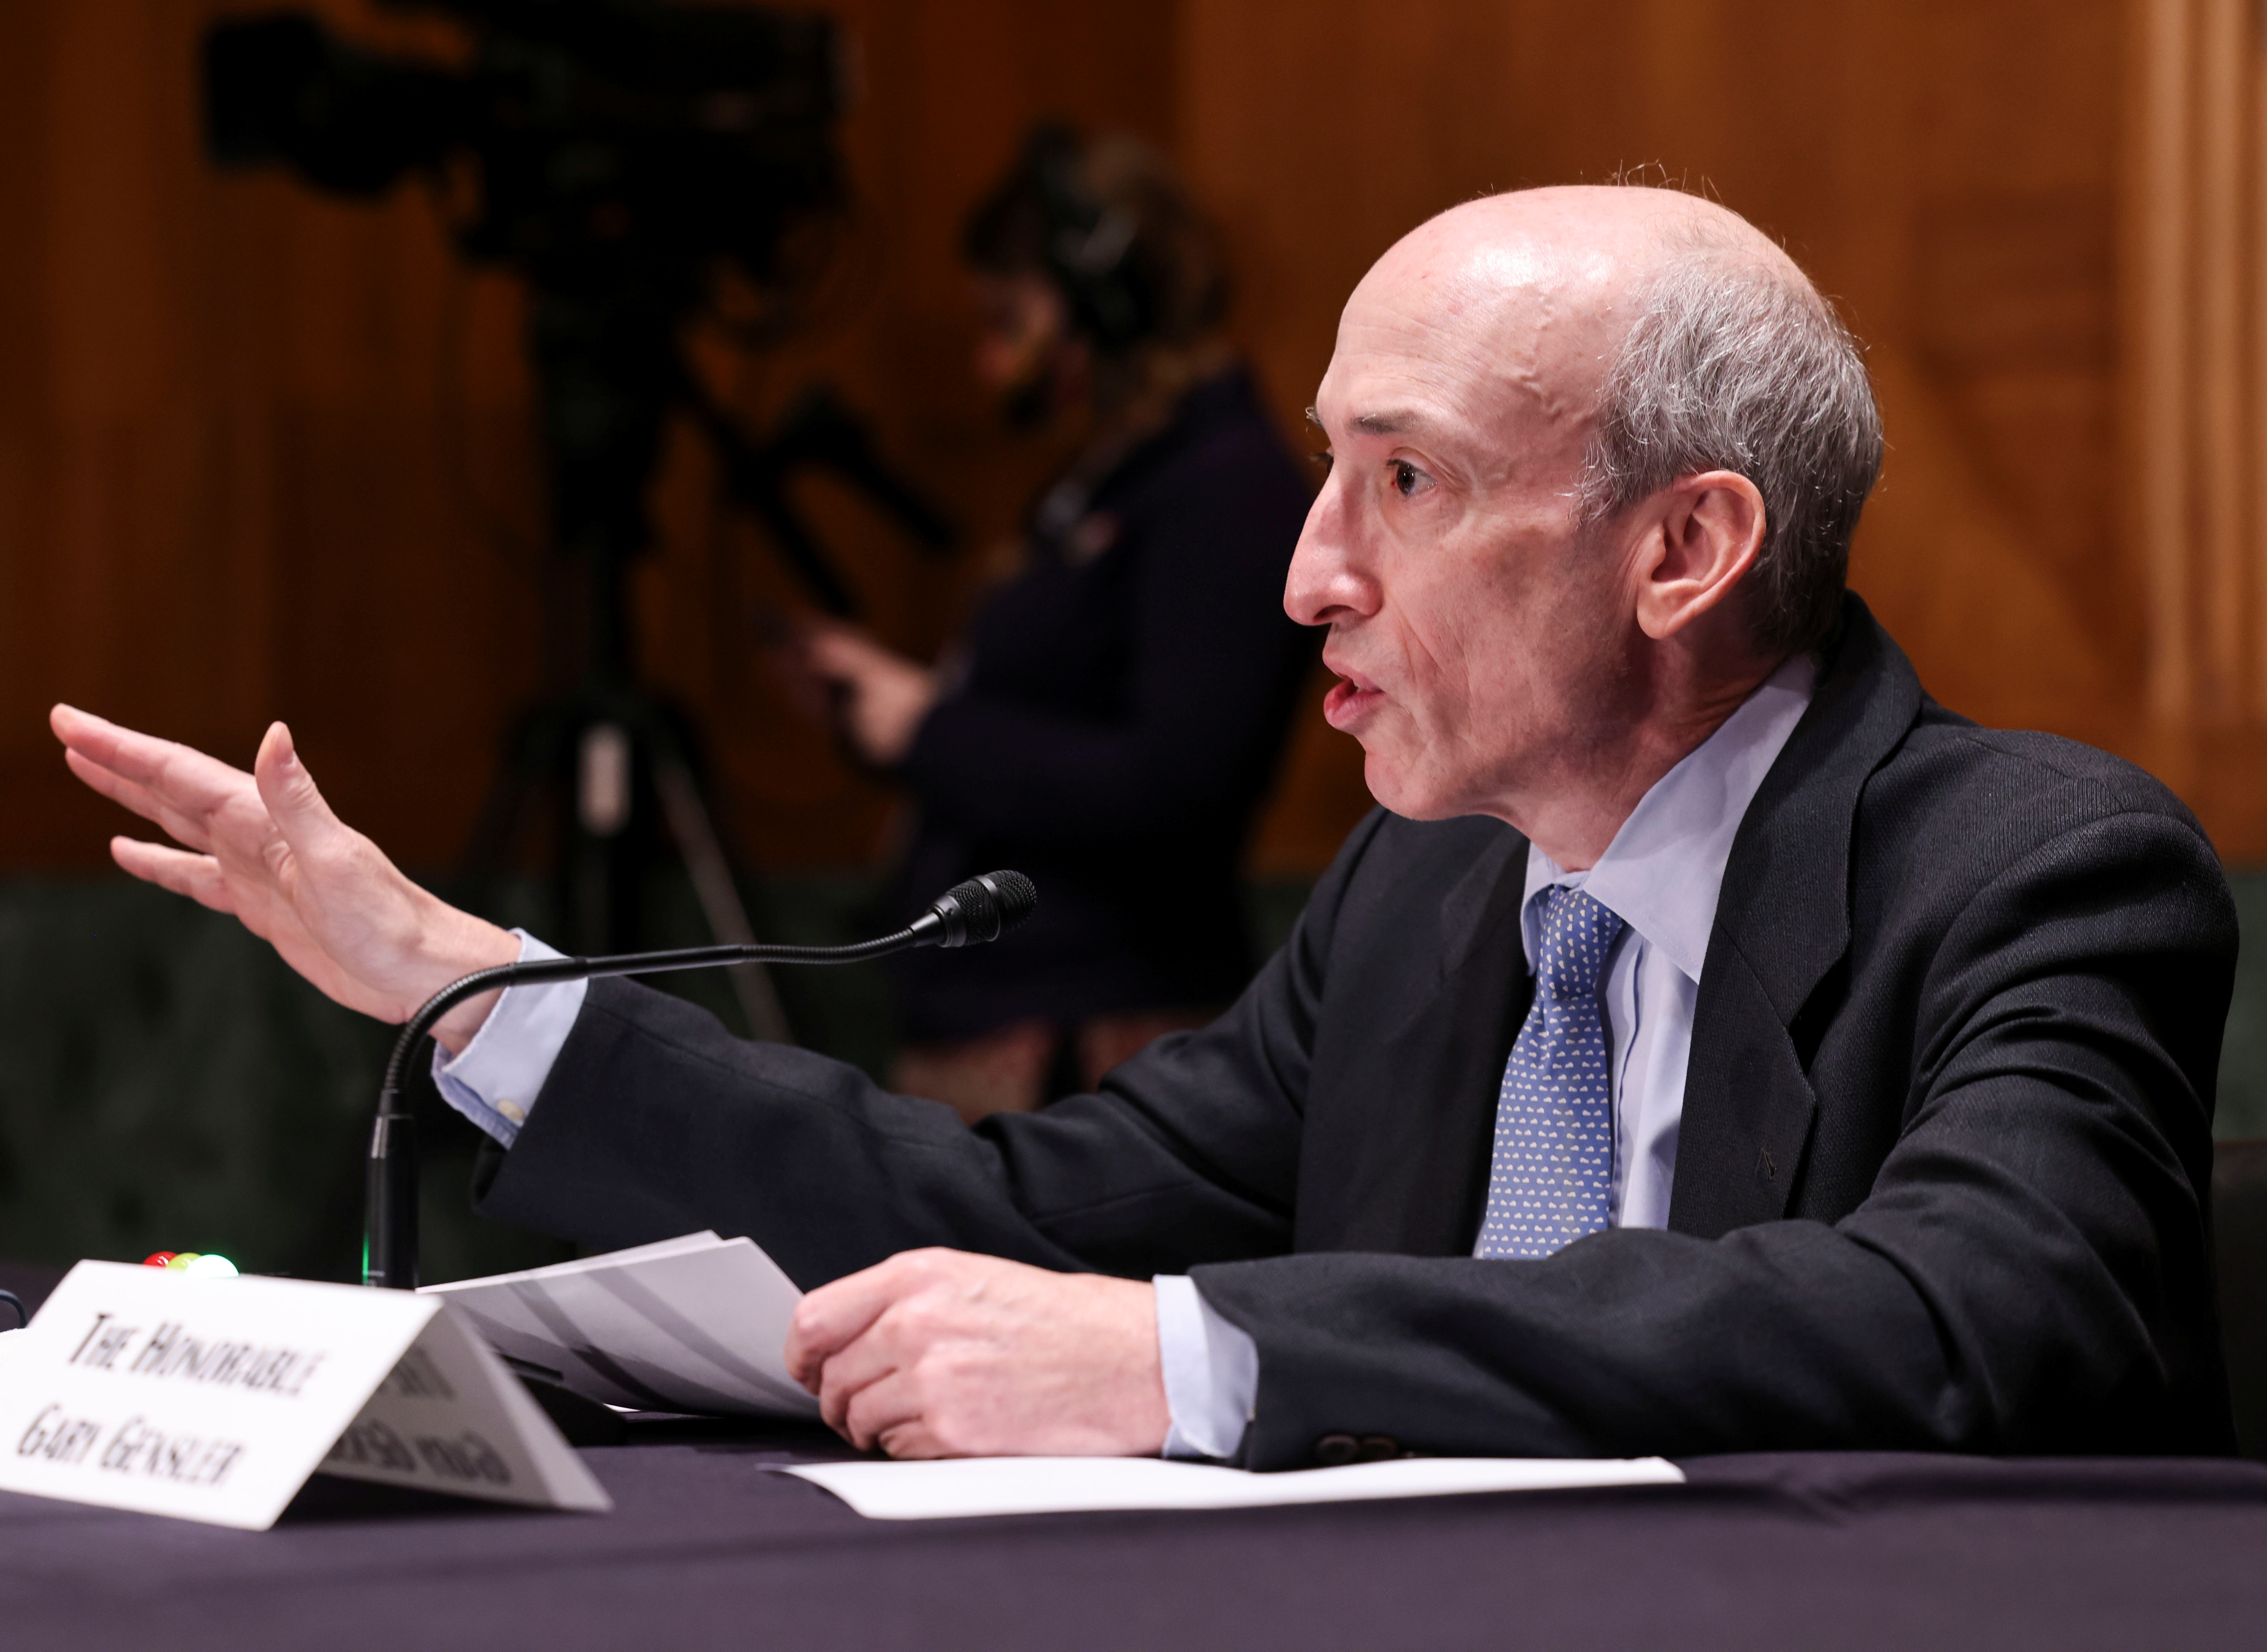 U.S. Securities and Exchange Commission (SEC) Chair Gary Gensler testifies before a Senate Banking, Housing, and Urban Affairs Committee oversight hearing on the SEC on Capitol Hill in Washington, U.S., September 14, 2021. REUTERS/Evelyn Hockstein/Pool